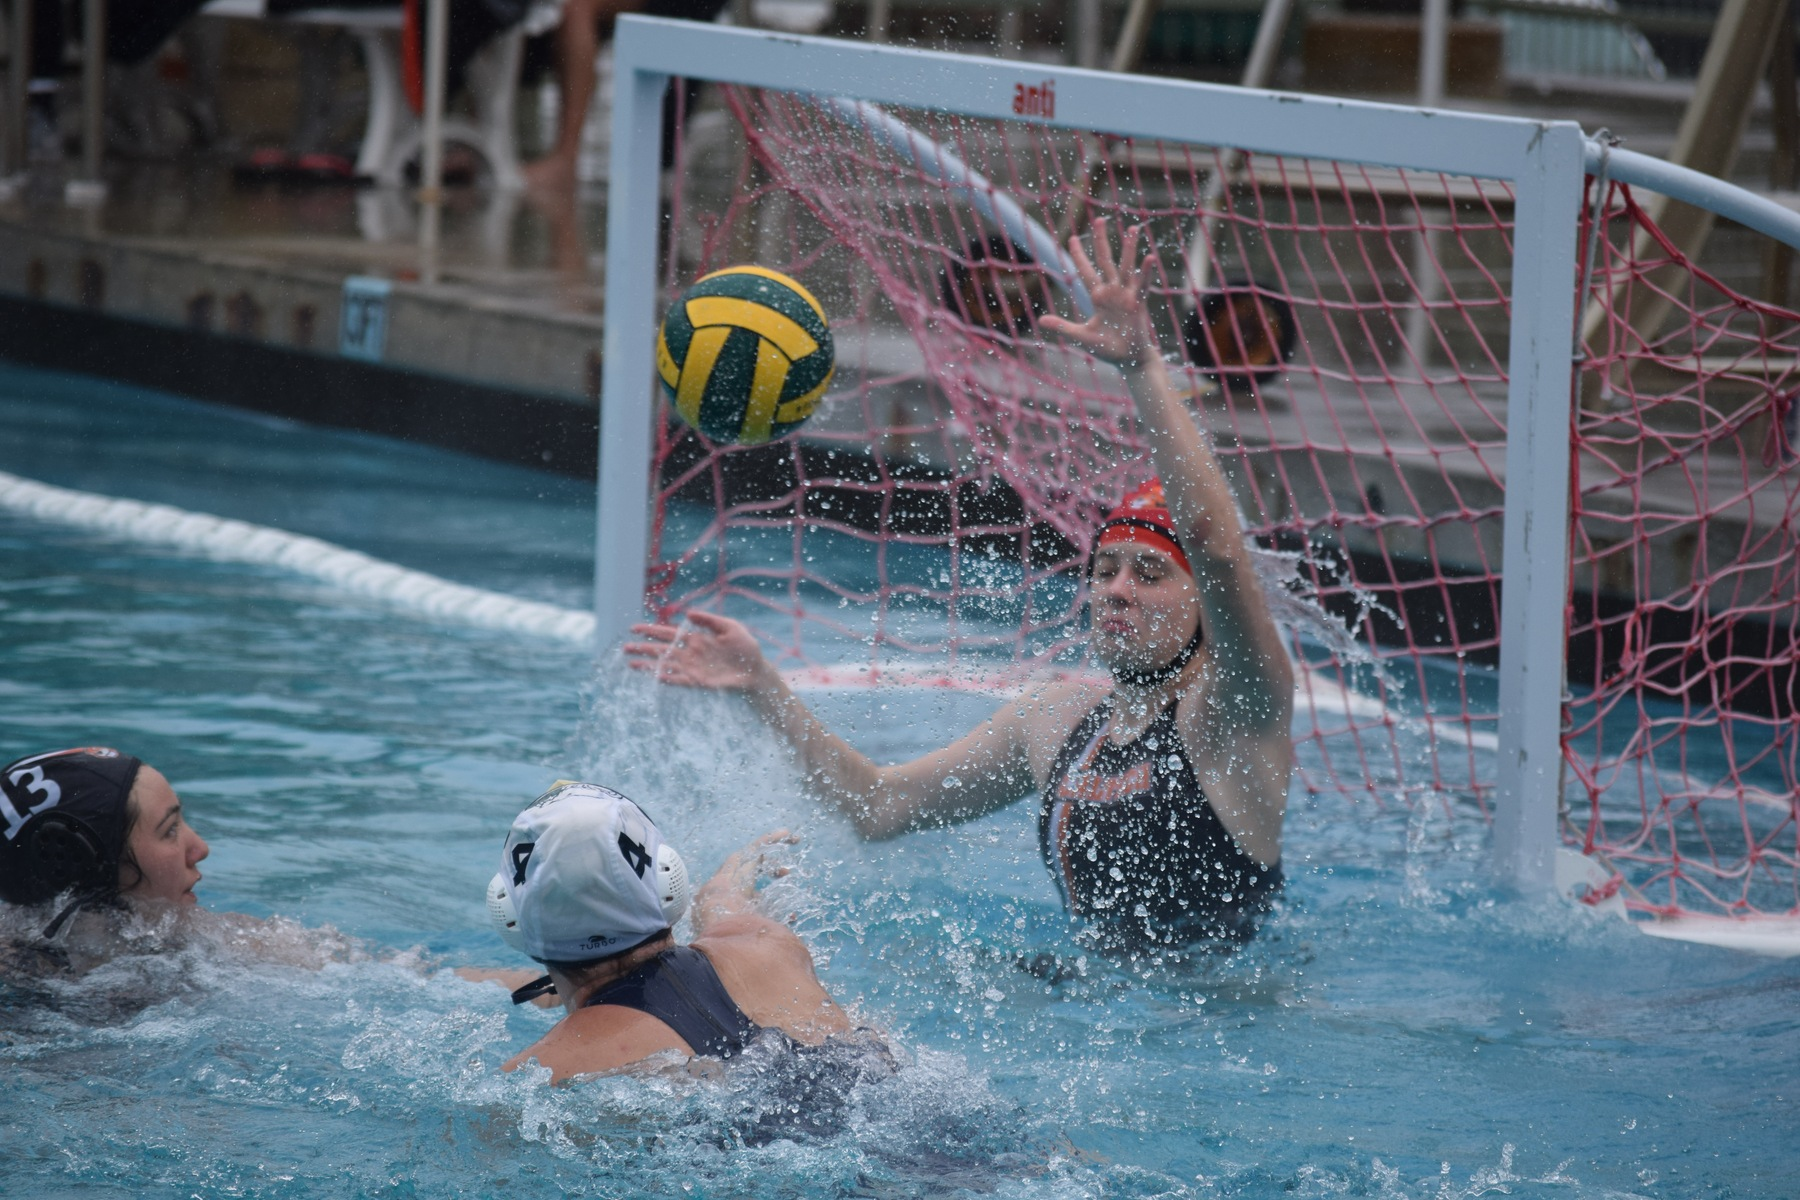 Women's Water Polo Endures Lightning, PSB For First Win Since 2017